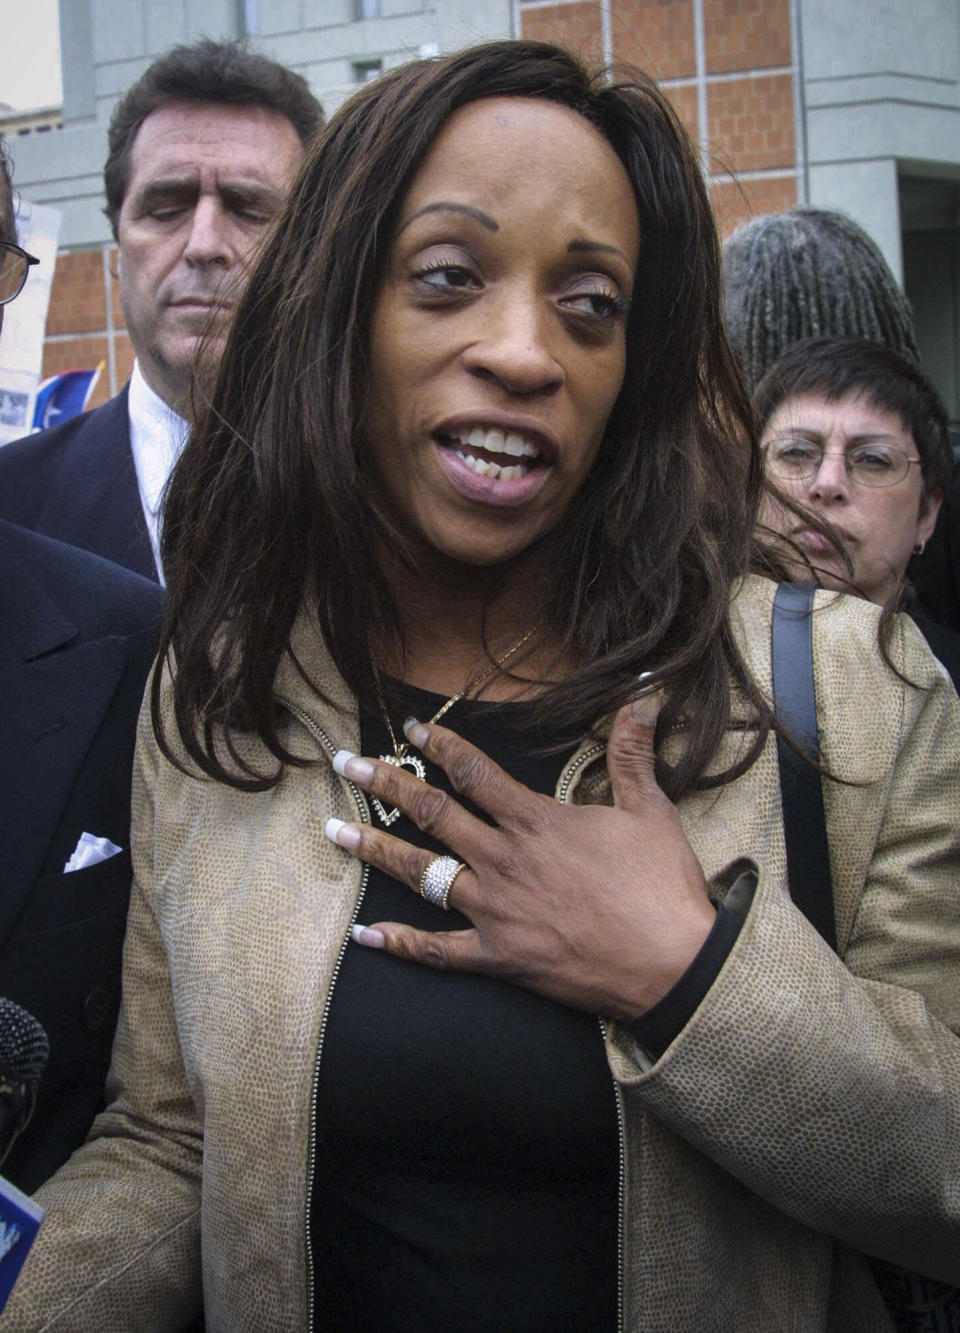 FILE - This Saturday May 26, 2001 file photo shows Kathy Jordan Sharpton as she meets with supporters following a visit to her husband the Rev. Al Sharpton at the Metropolitan Detention Center in the Brooklyn, N.Y. More than 16 years after separating, Rev. Al Sharpton has filed for divorce from his estranged wife, Kathy Jordan Sharpton. (AP Photo/Shawn Baldwin, File)